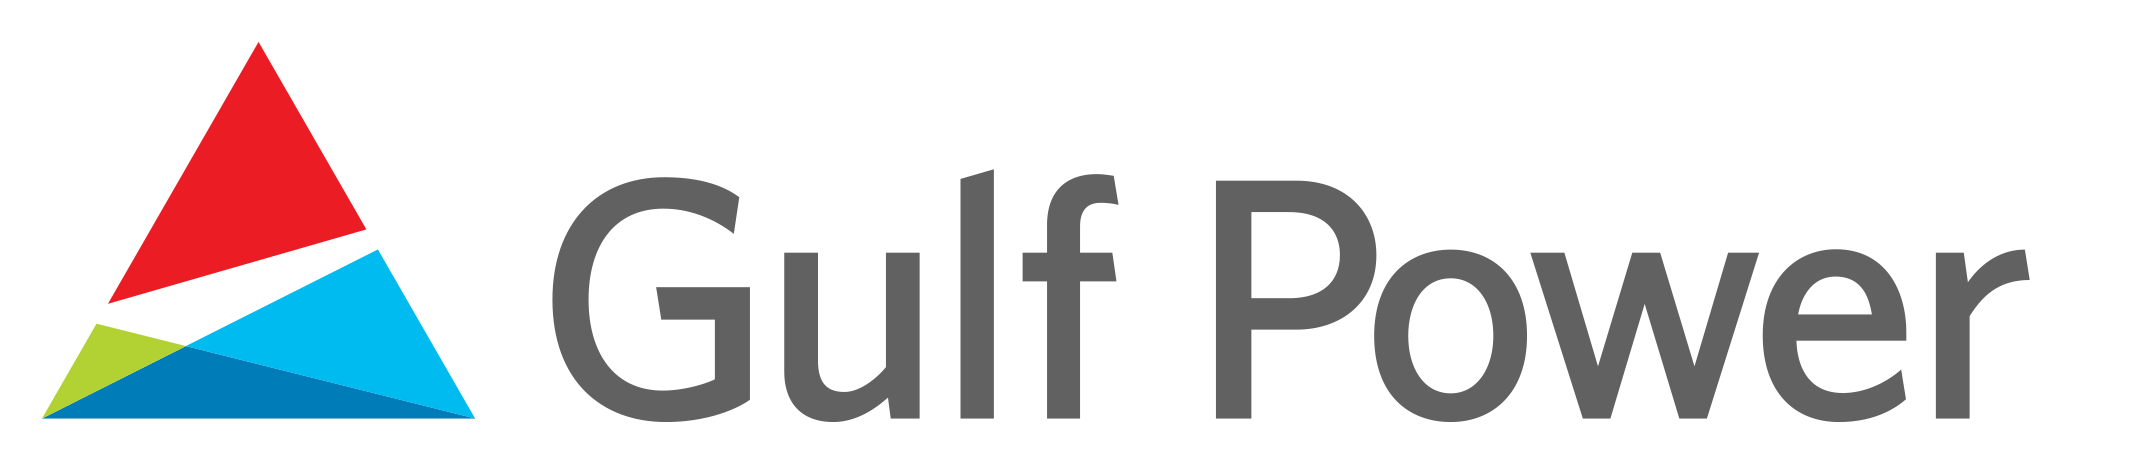 Gulf Power logo.